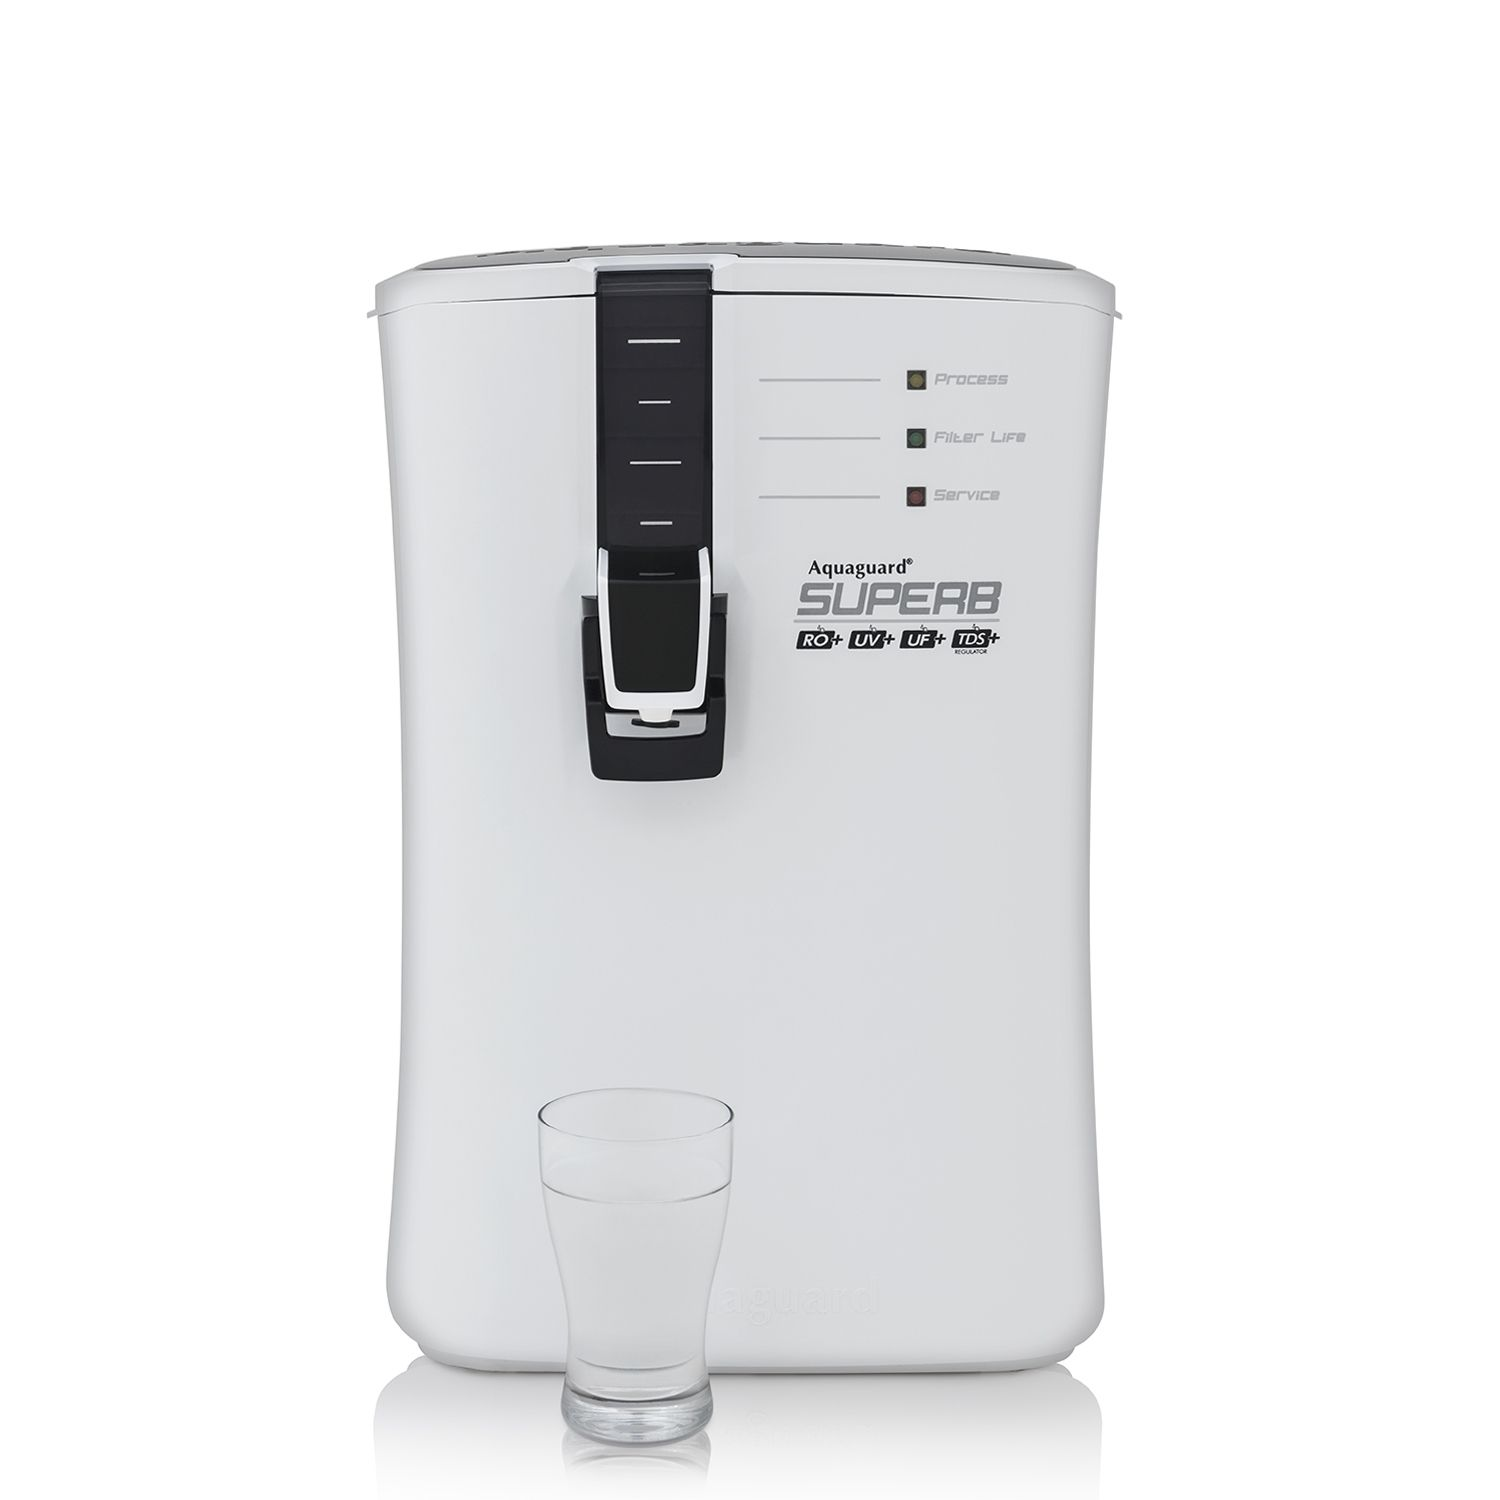 Eureka Forbes Aquaguard SUPERB  RO+UV+UF Water Purifier